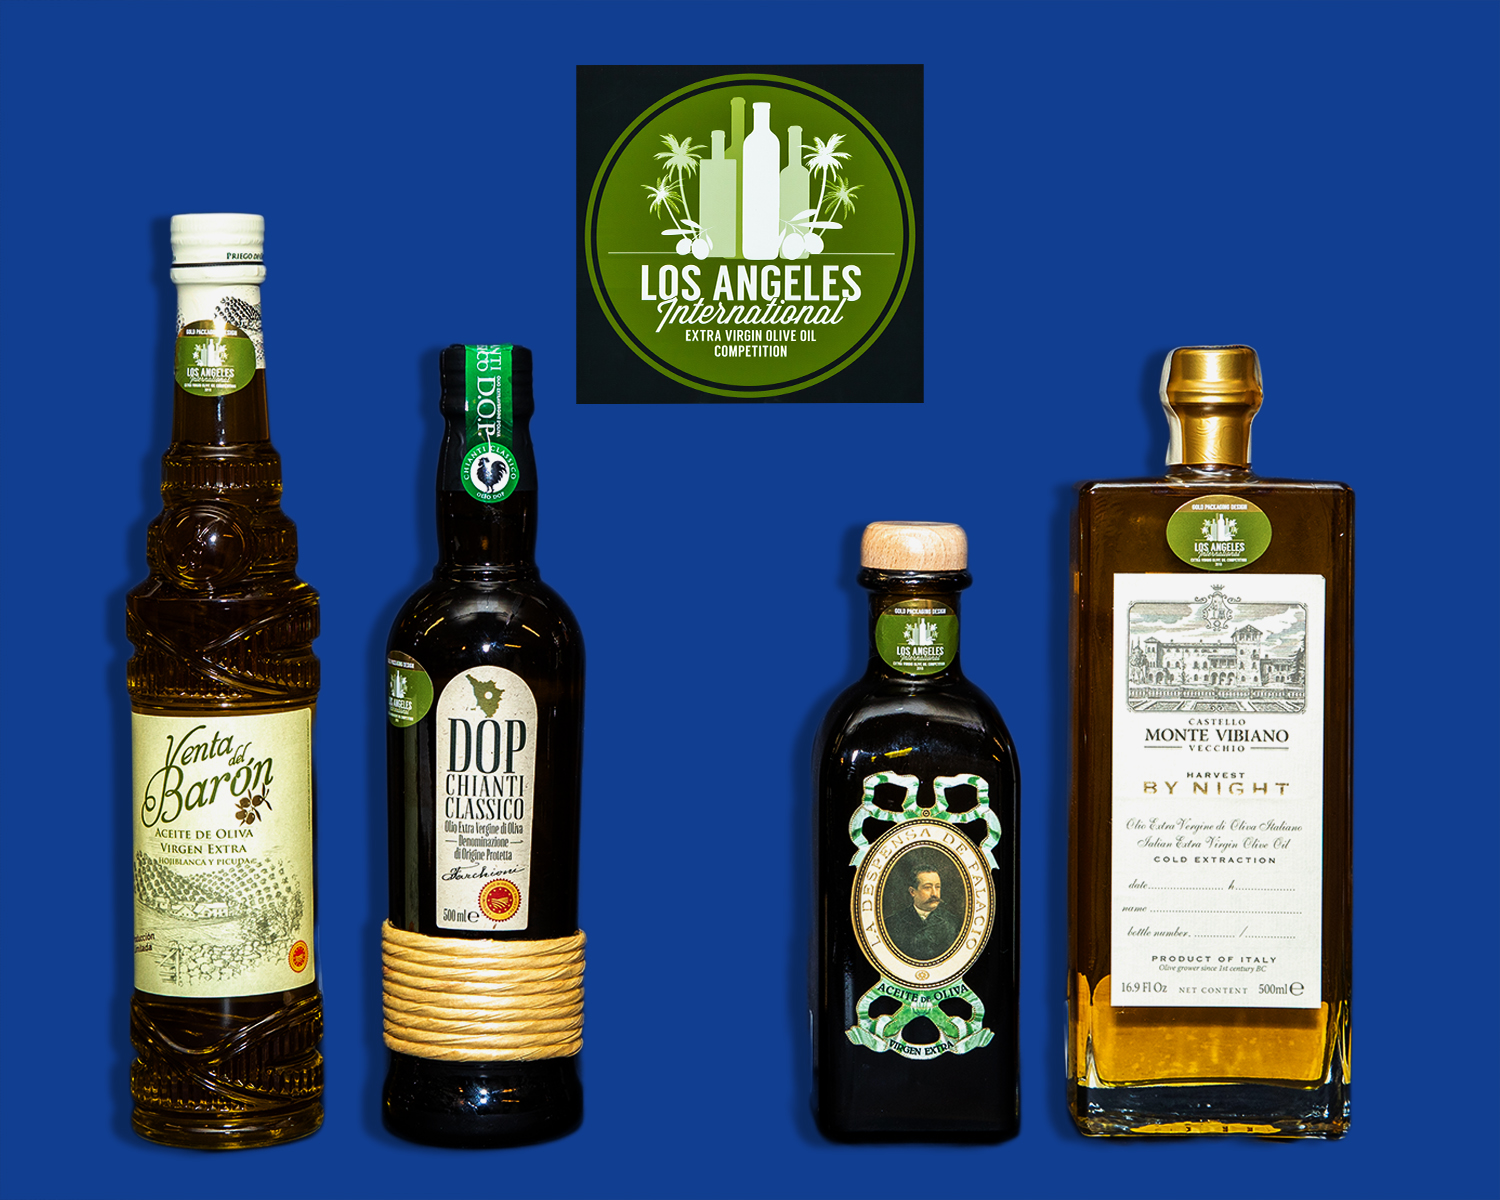 2019 LA International Olive Oil Gold Packaging - Traditional